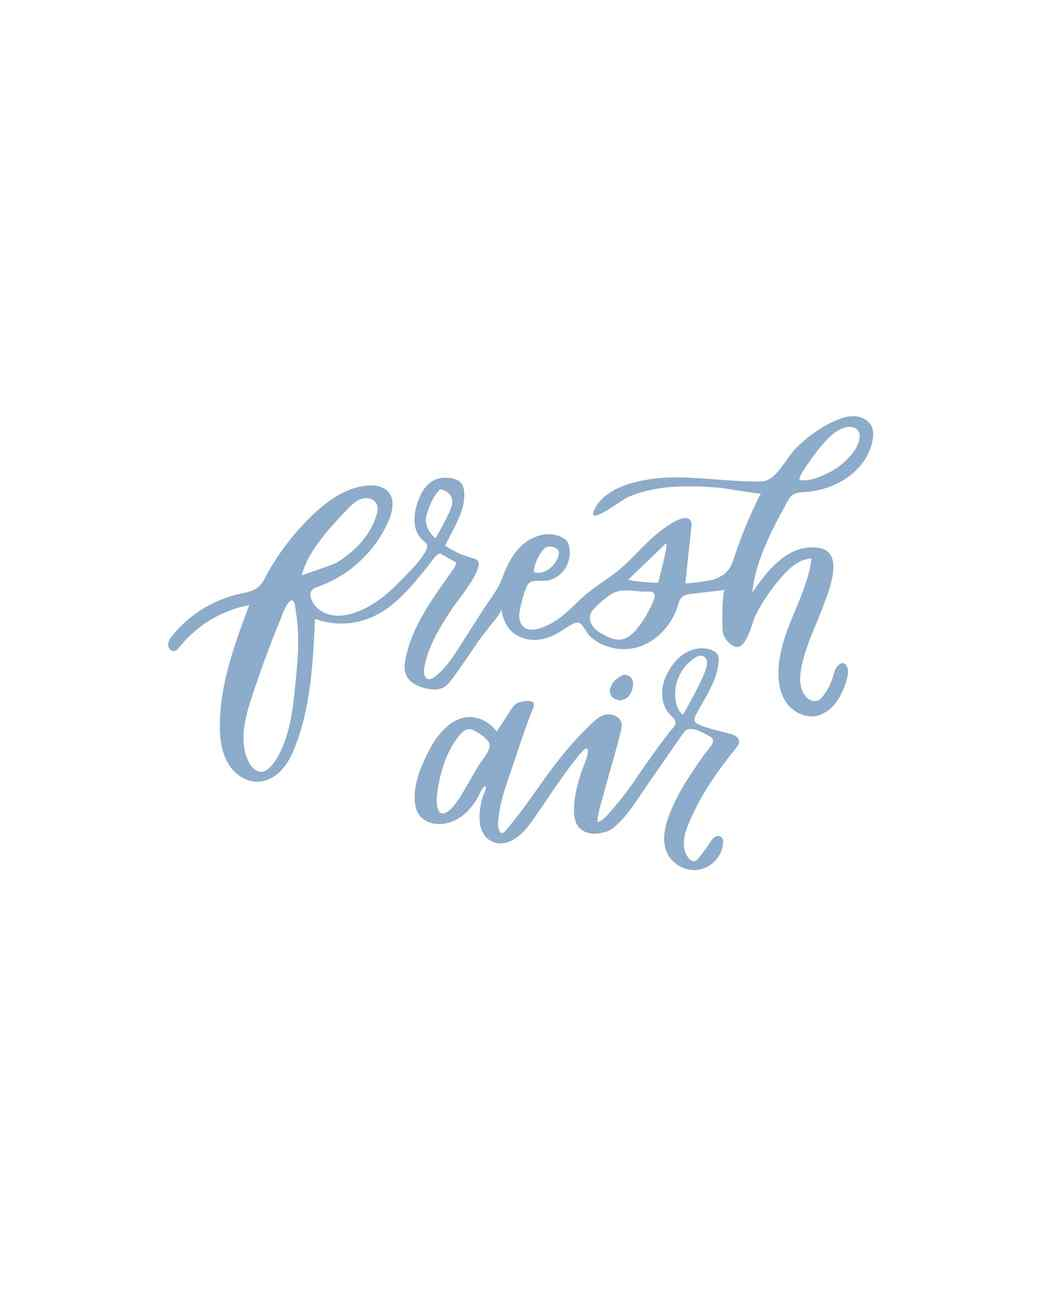 """fresh air"" calligraphy"